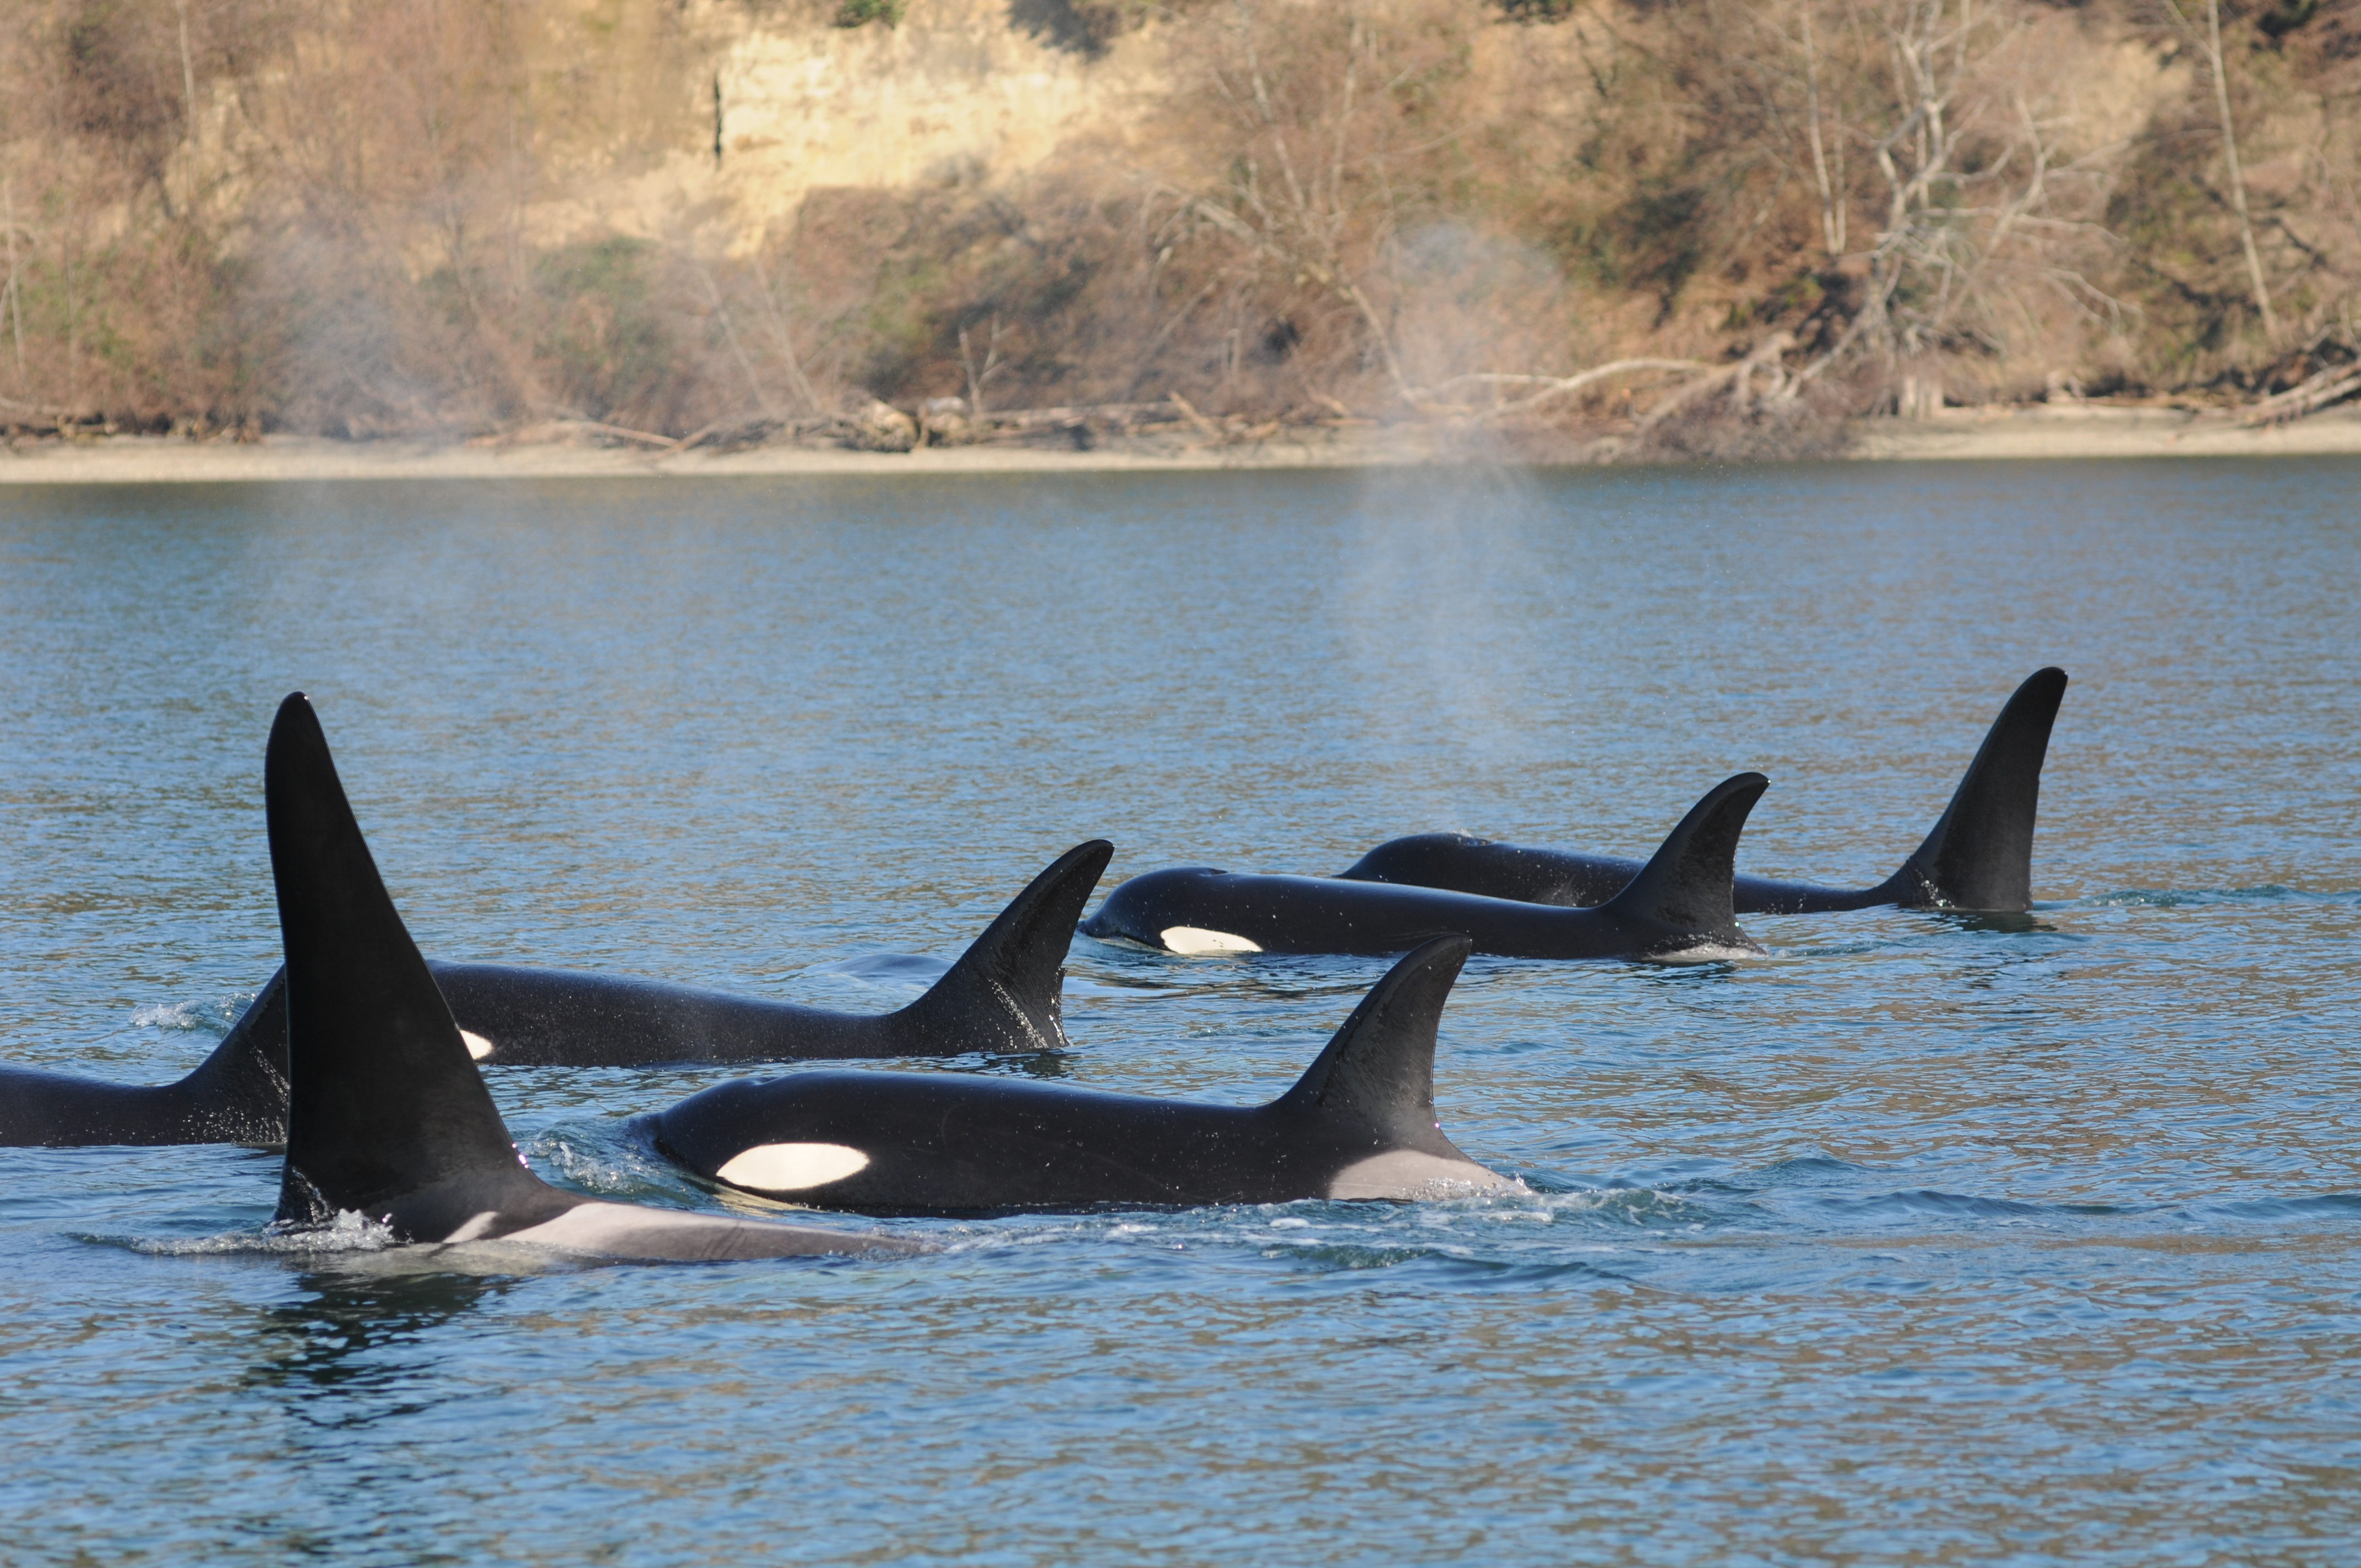 Orcas surfacing for a breath together